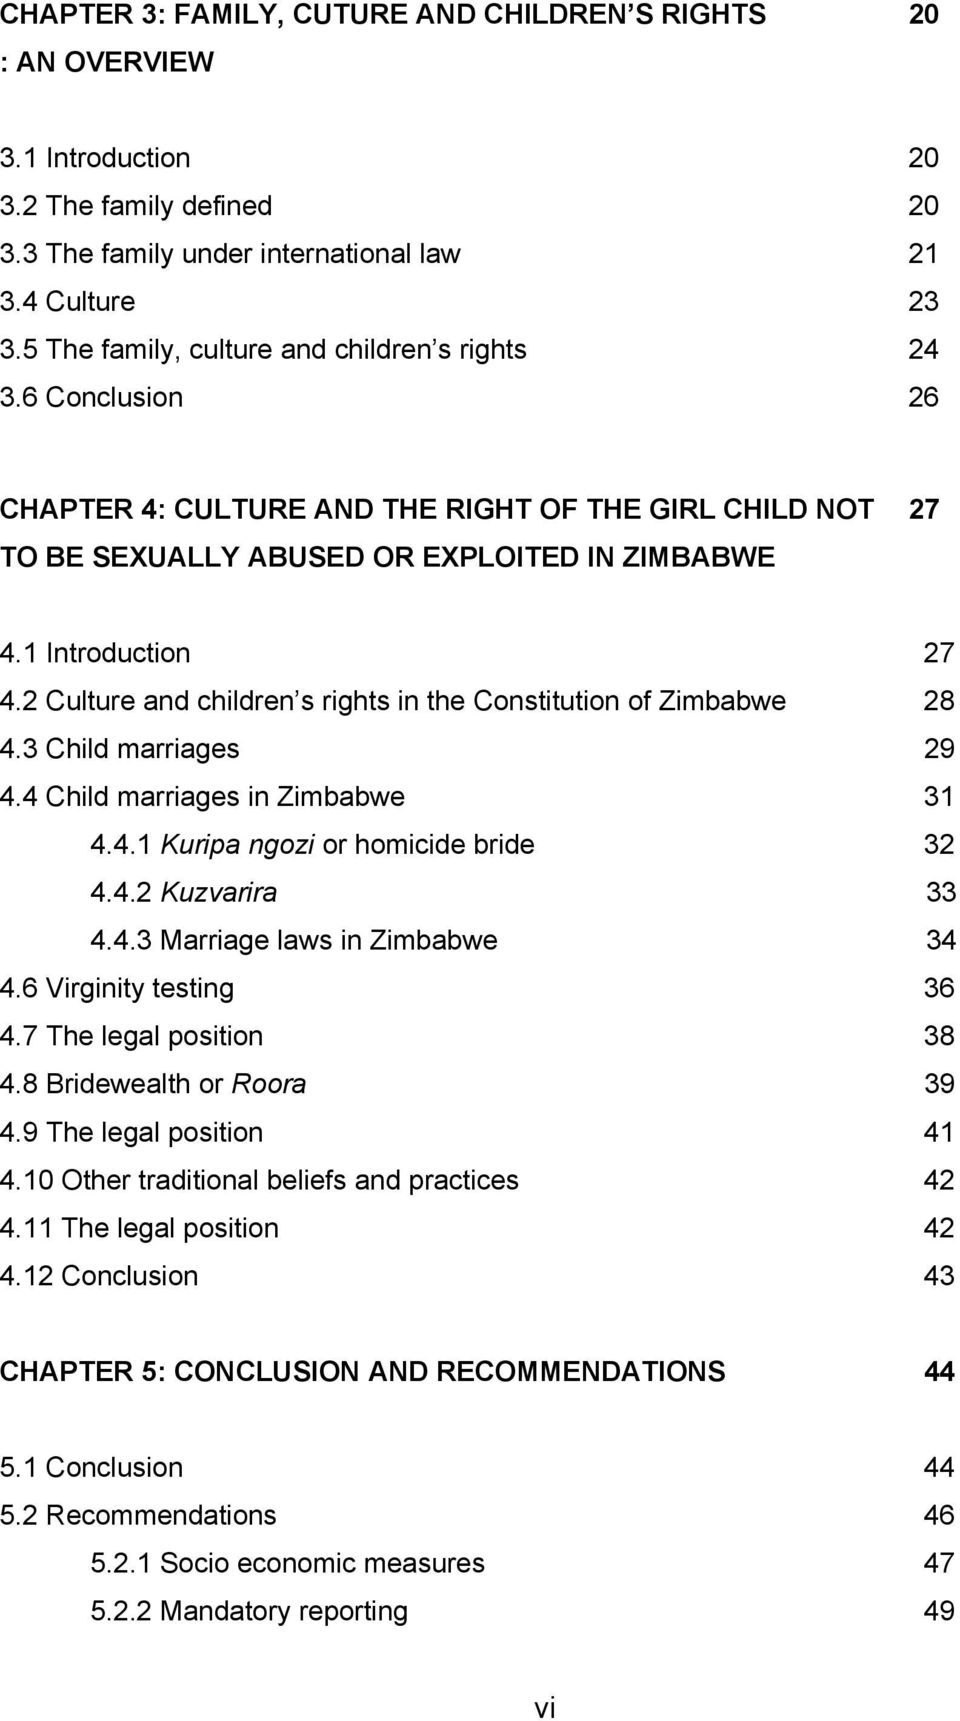 conclusion of child marriage